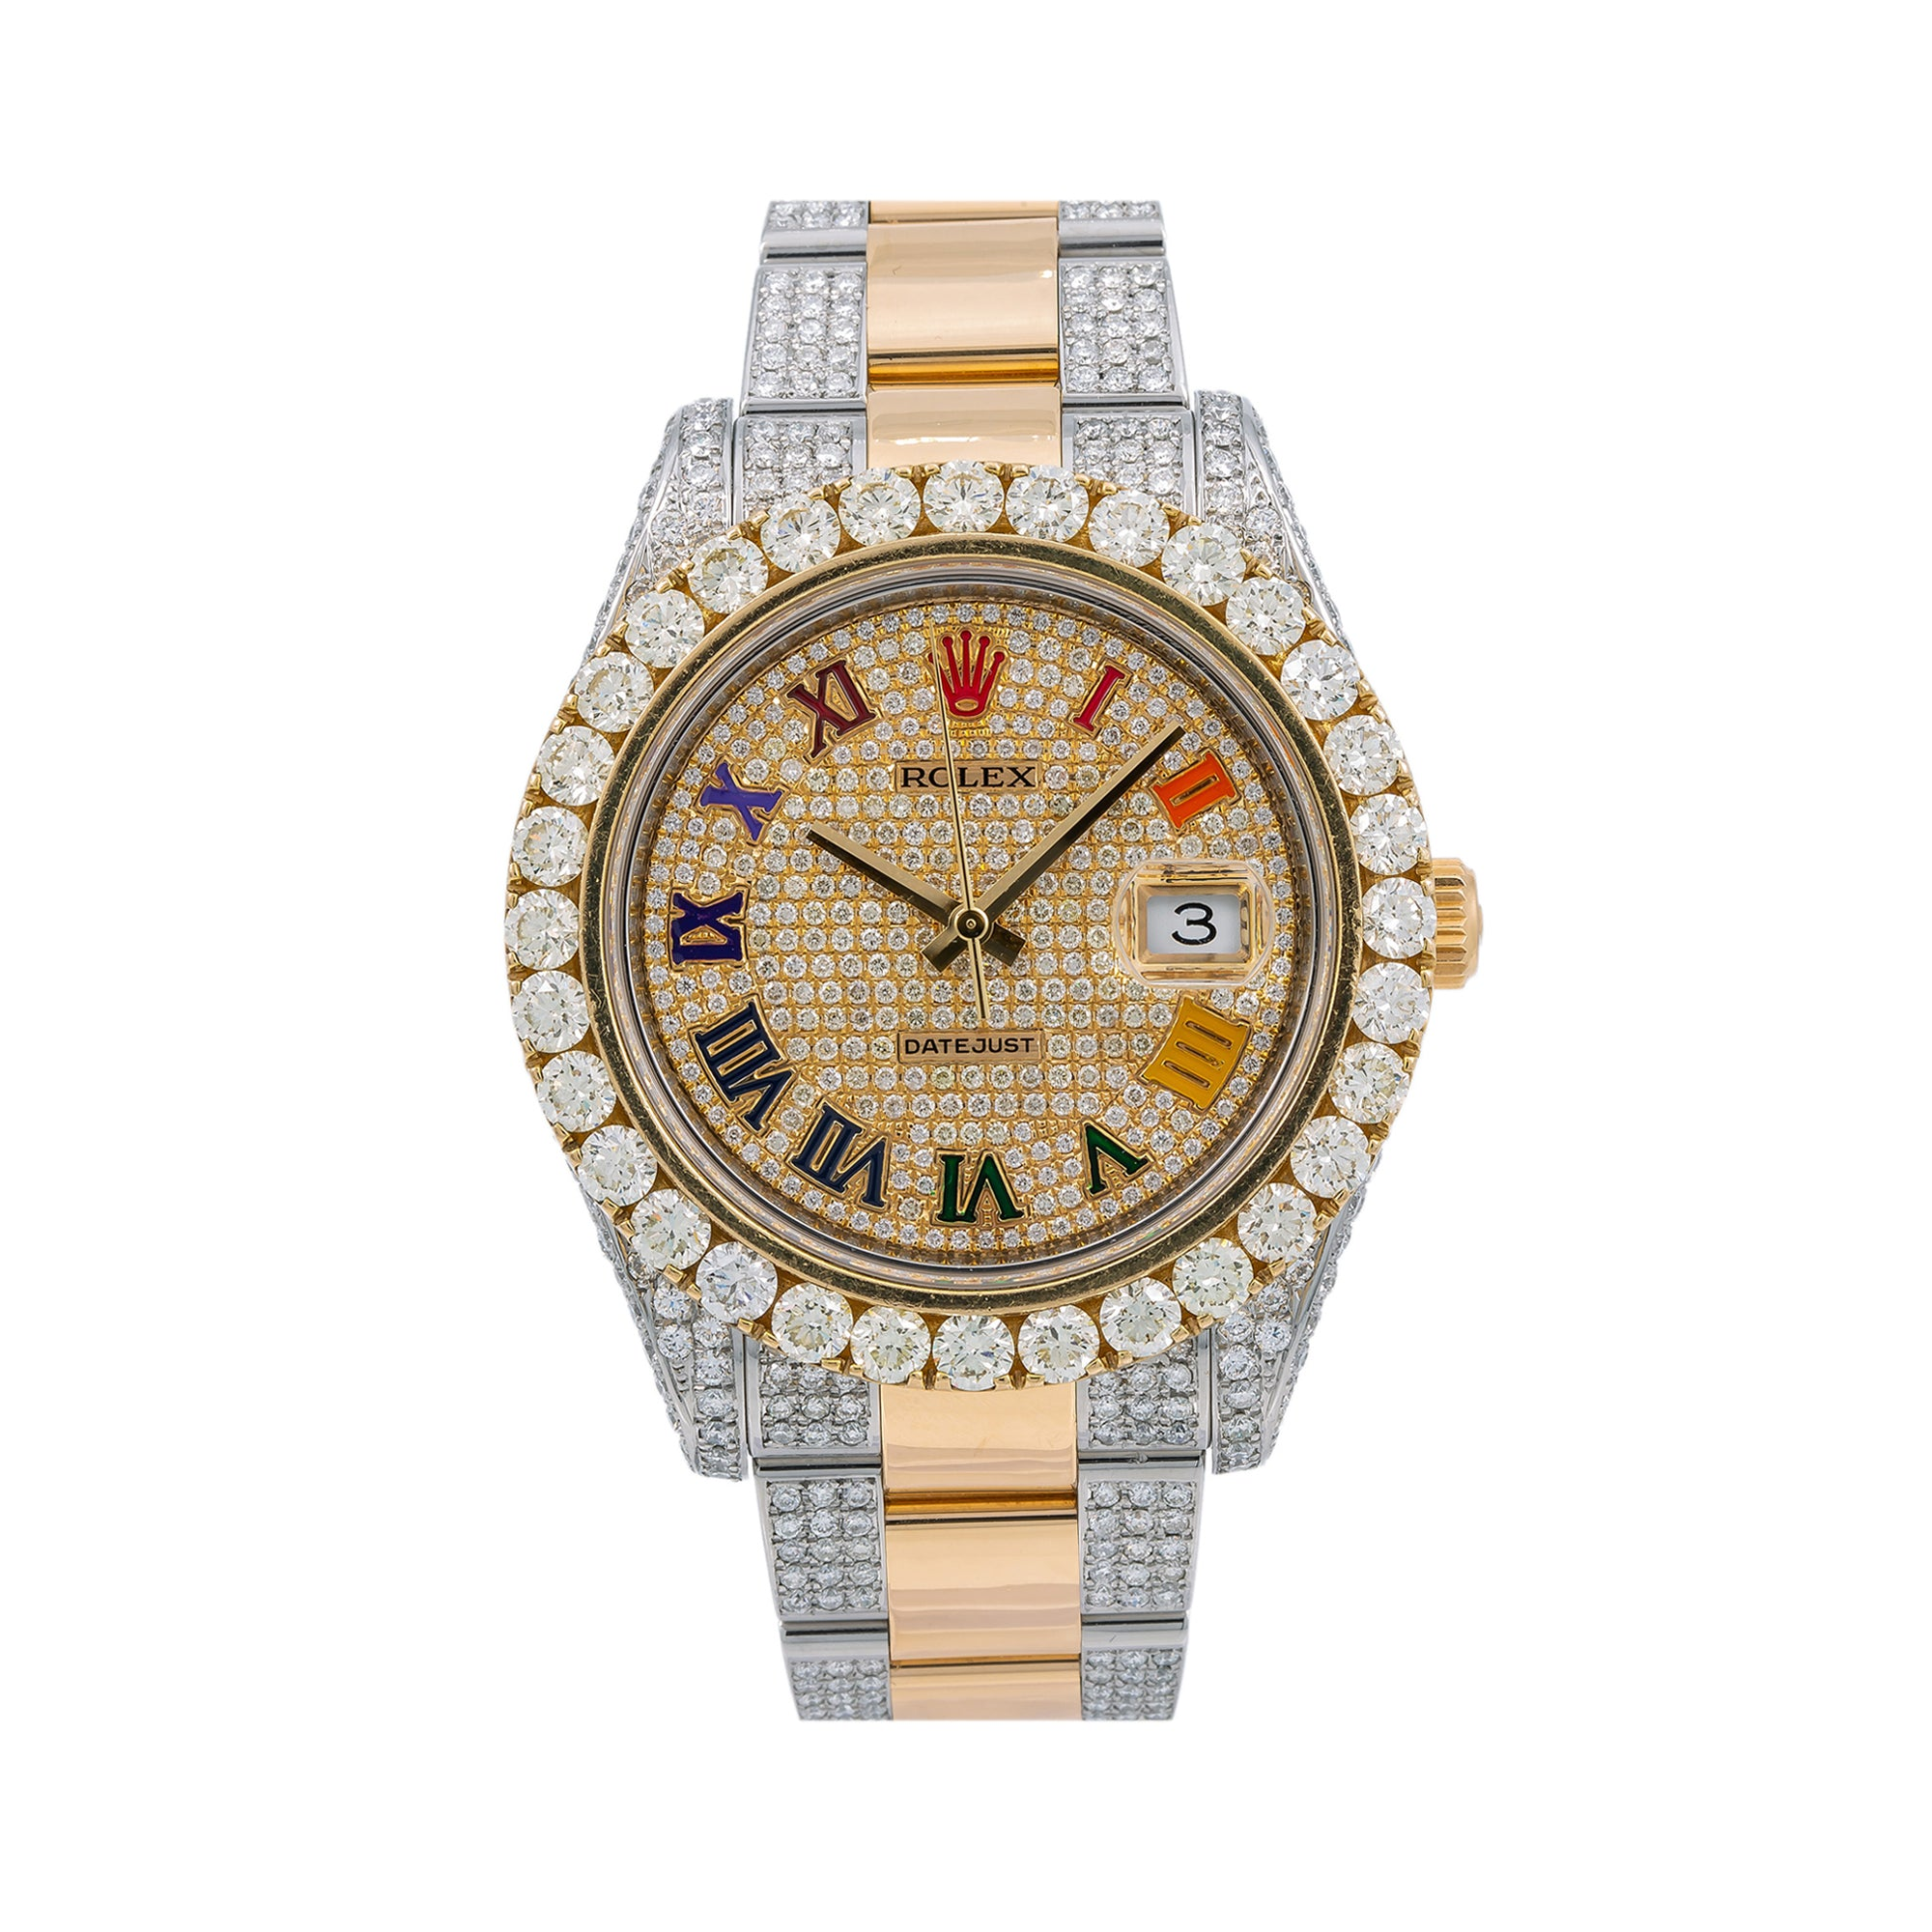 Rolex Datejust II 116333 41MM Champagne Diamond Dial With Two Tone Oyster Bracelet